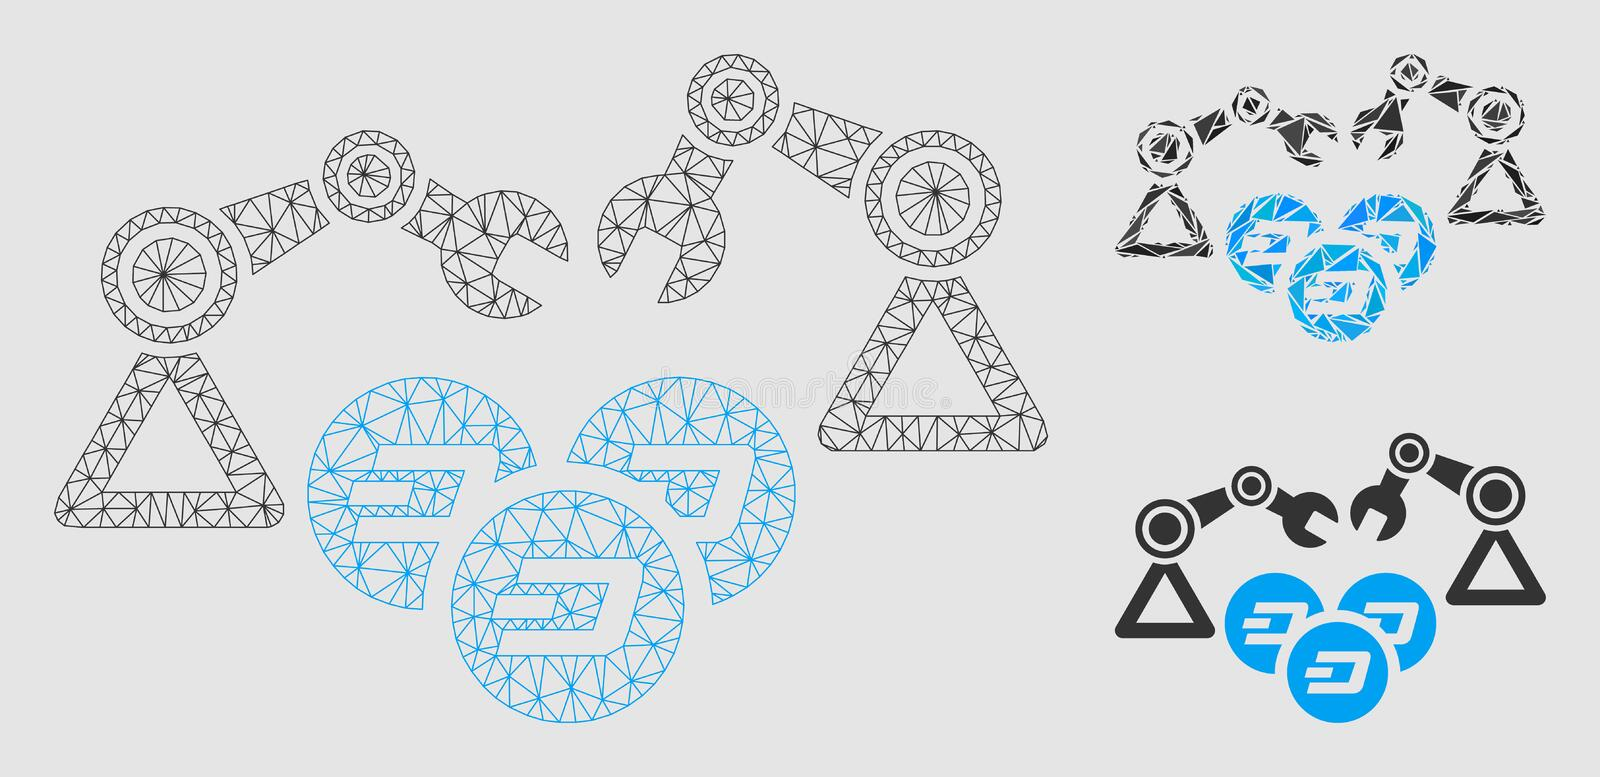 Dash Mining Robotics Vector Mesh Carcass Model and Triangle Mosaic Icon. Mesh Dash mining robotics model with triangle mosaic icon. Wire frame polygonal mesh of royalty free illustration